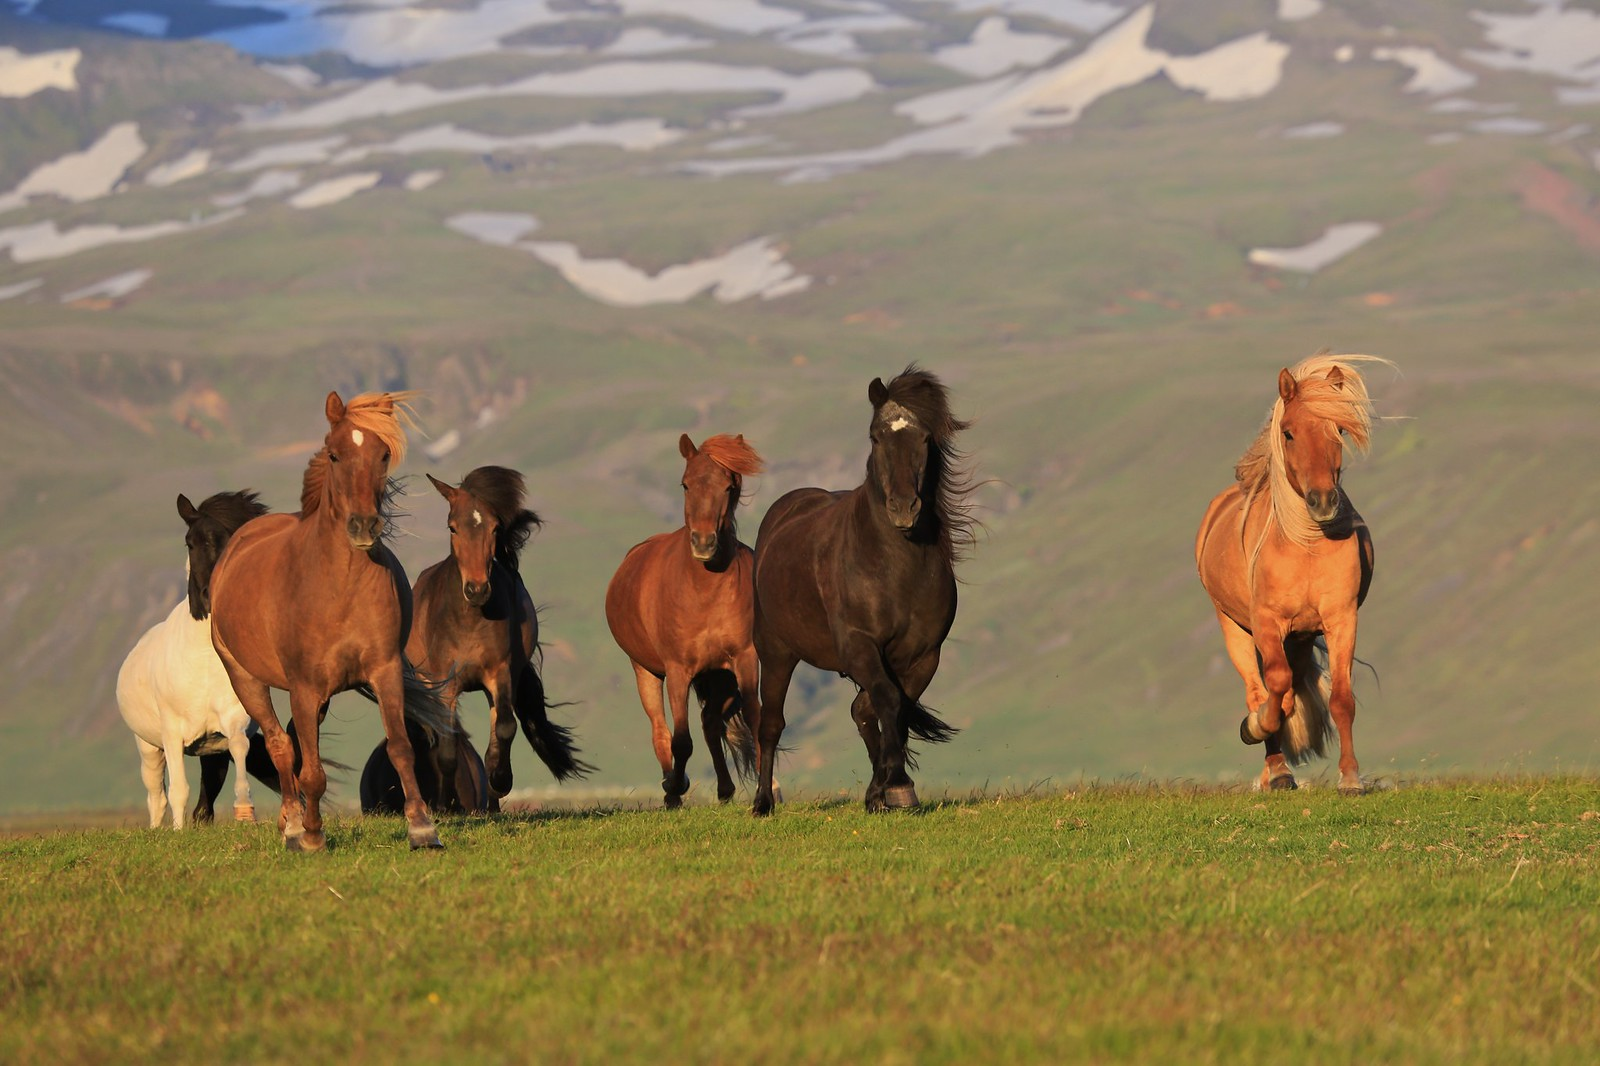 Icelandic horses on the run (Explored)